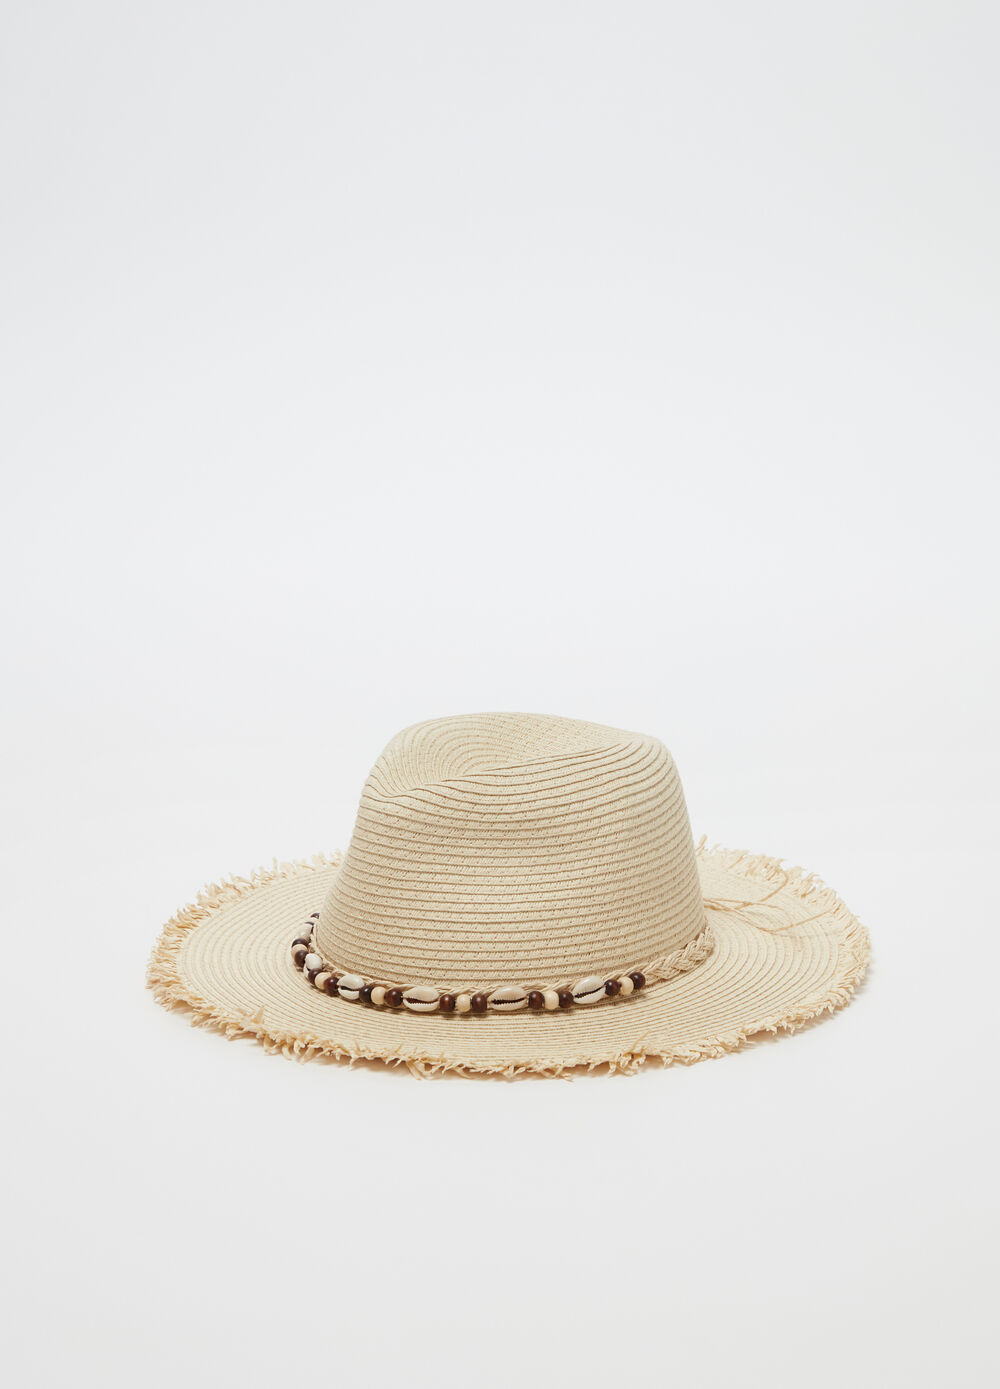 Straw-effect hat with shells